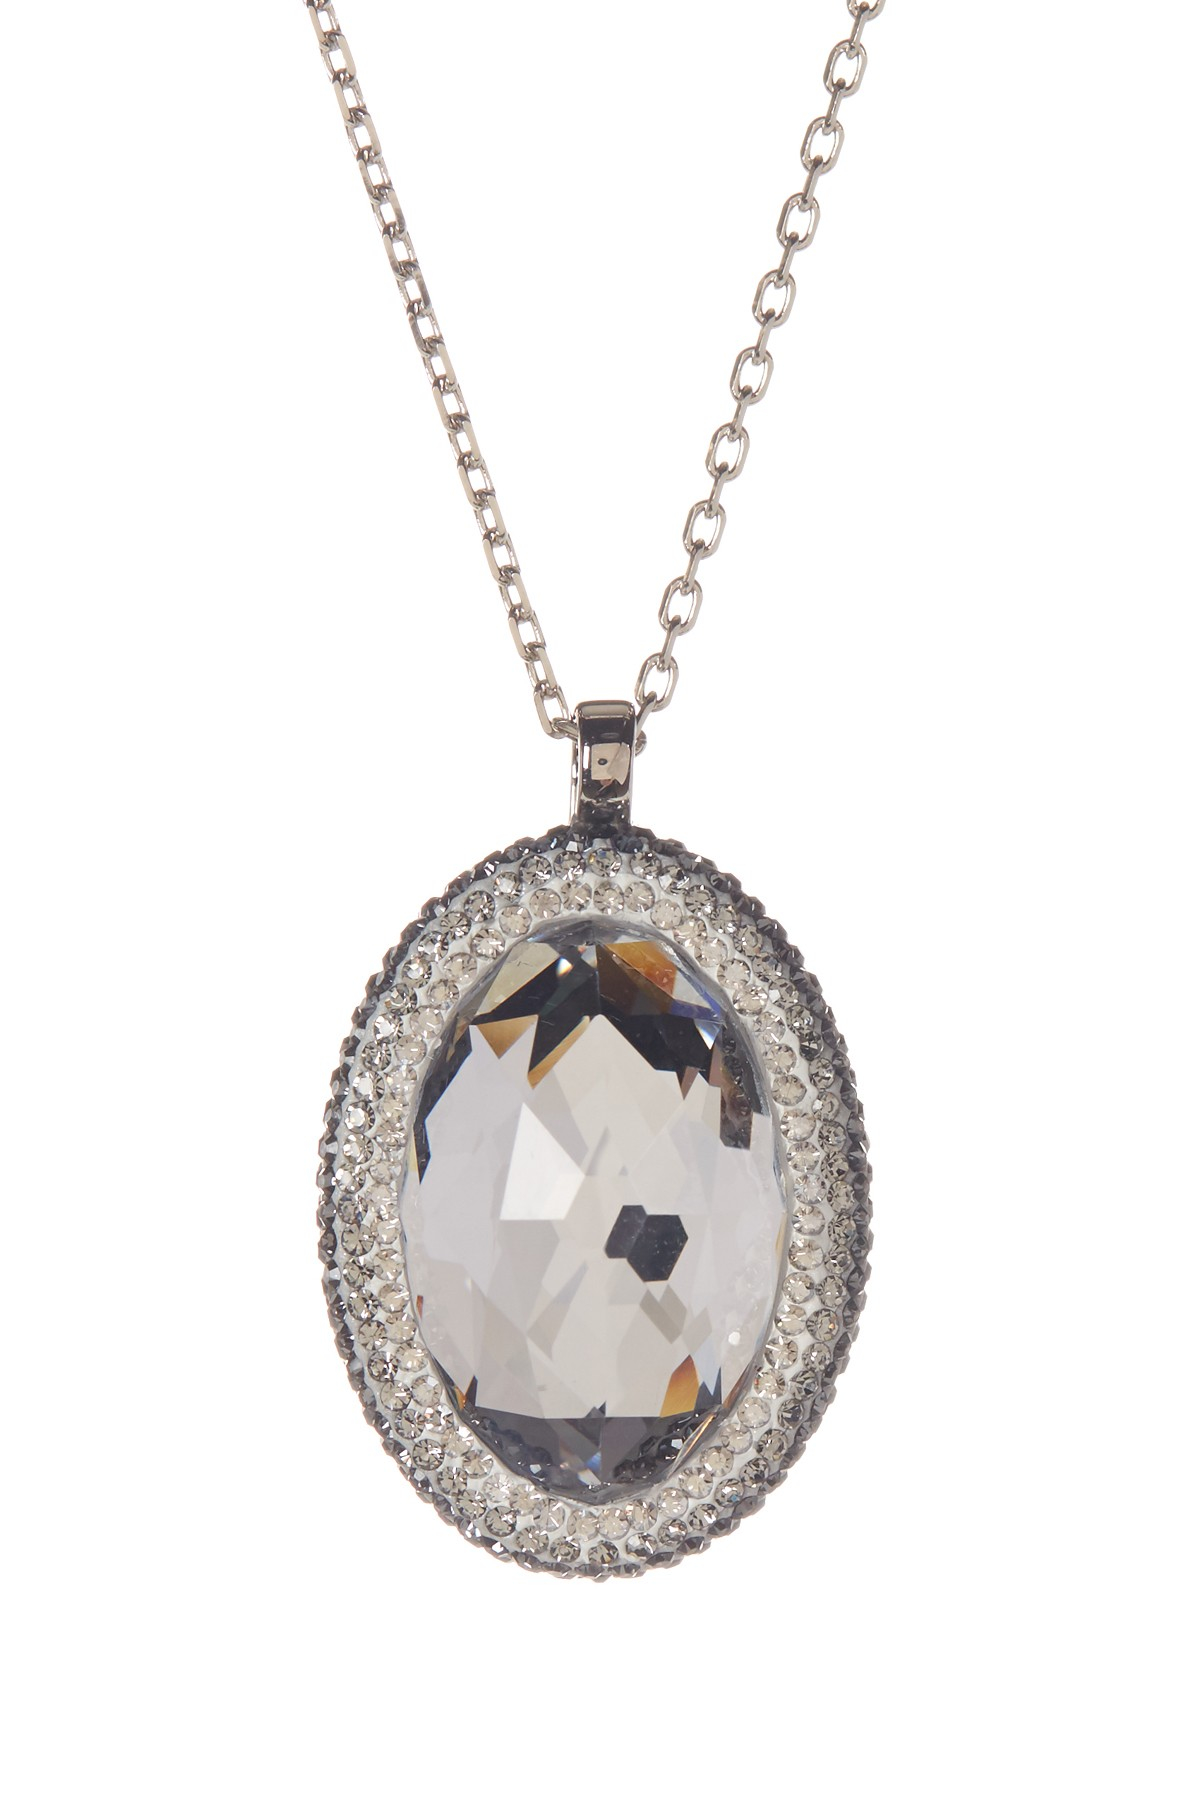 Lyst - Swarovski Vita Crystal Pendant Necklace in White